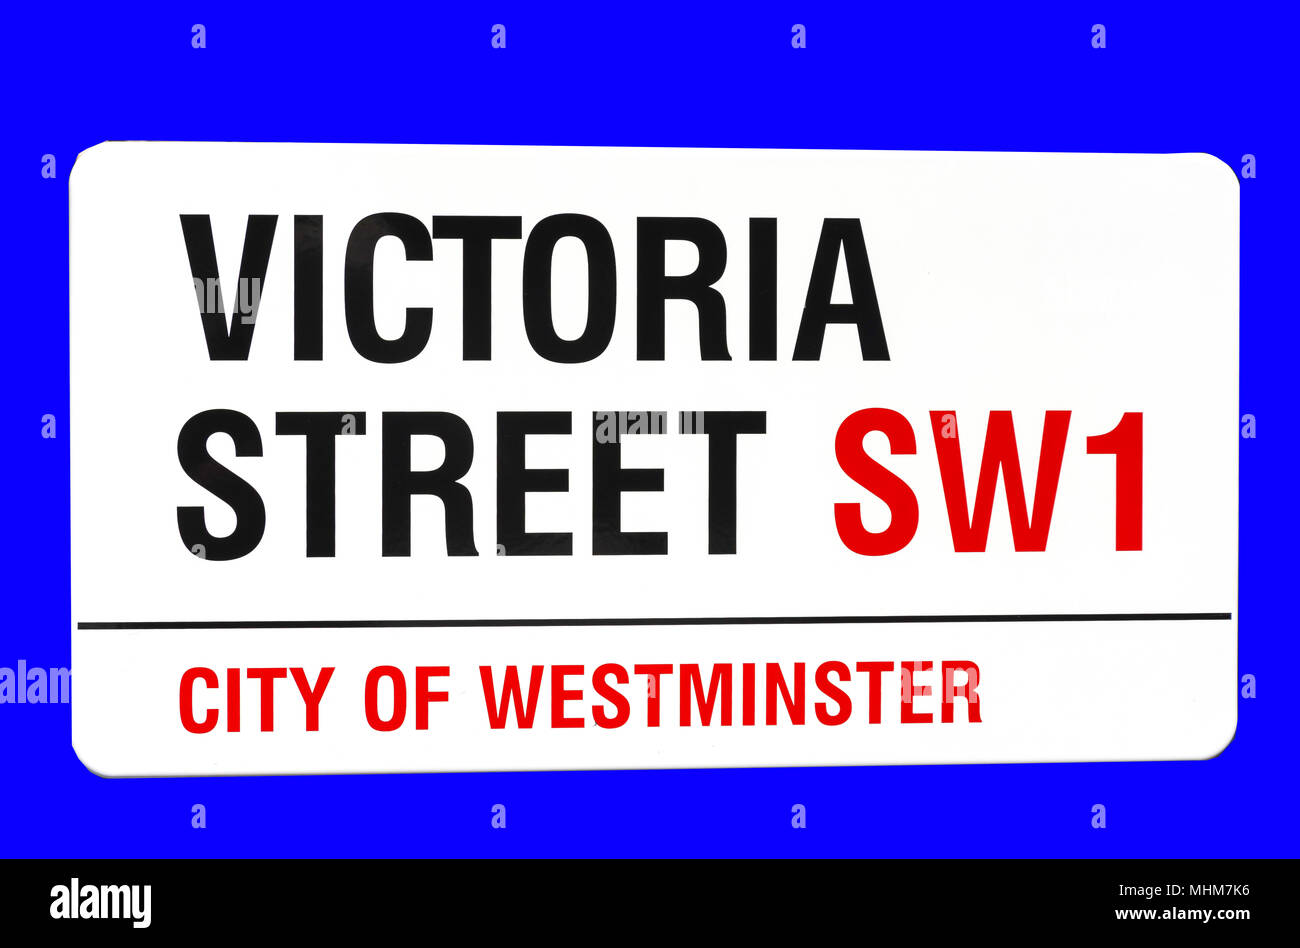 Street sign, Victoria Street, Victoria, City of Westminster, Greater London, England, United Kingdom - Stock Image